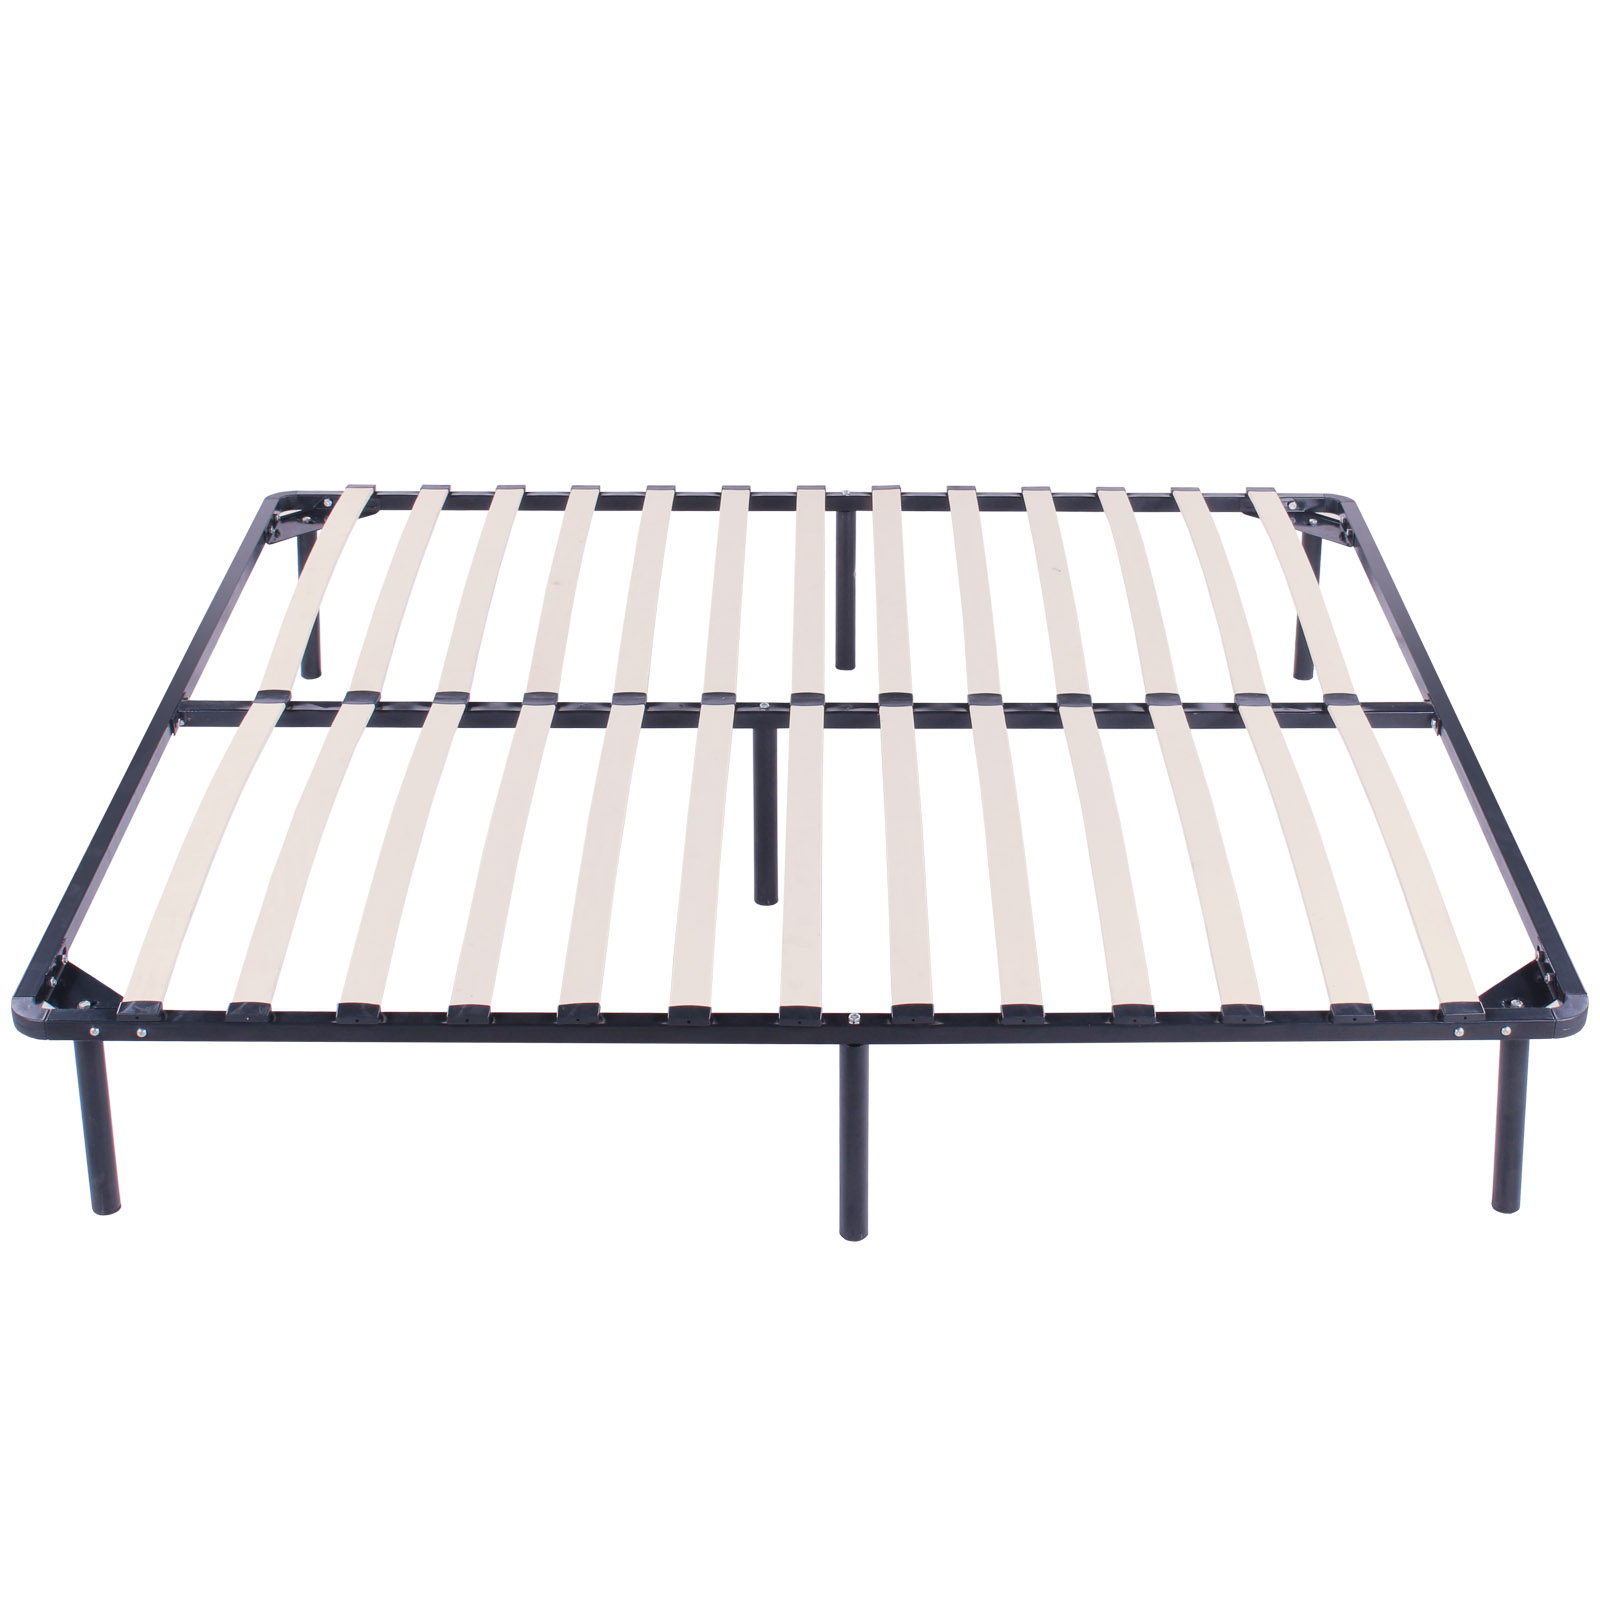 wood slats metal bed frame king size sleep wooden fantastic high reputation ebay